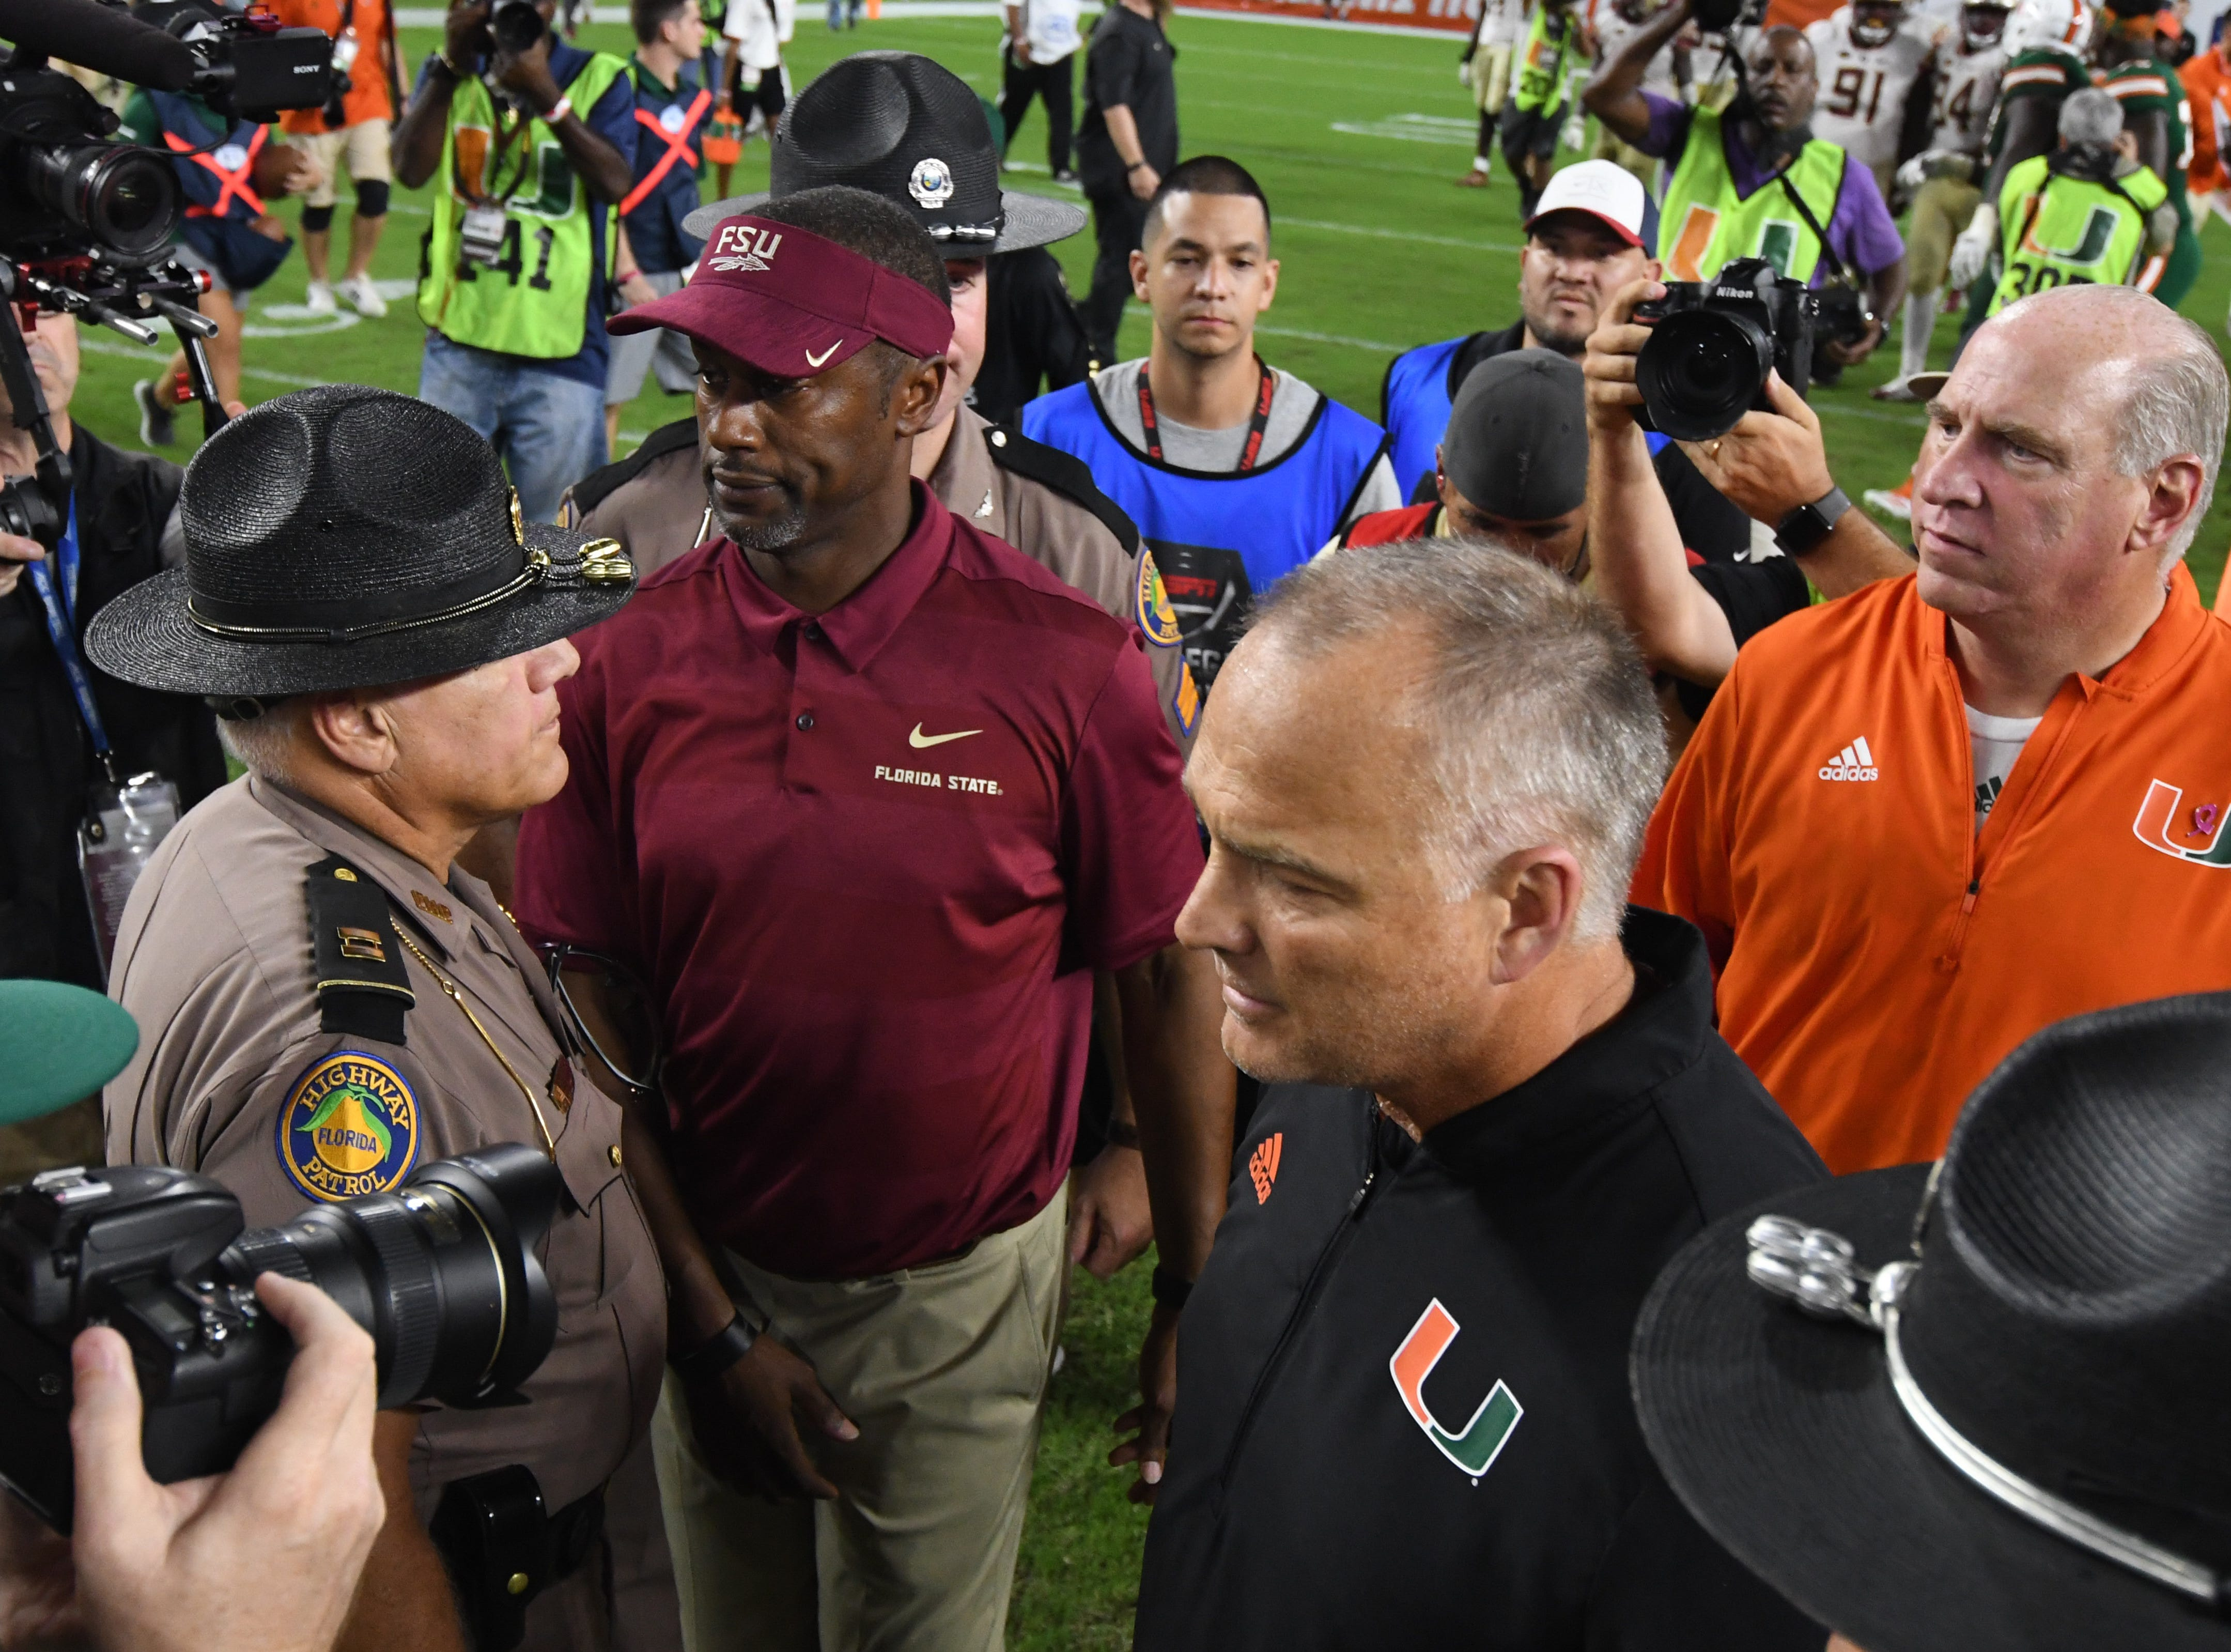 FSU head coach Willie Taggart meeting with Miami head coach Mark Richt after the FSU game against Miami at the Hard Rock Stadium on October 6th 2018.